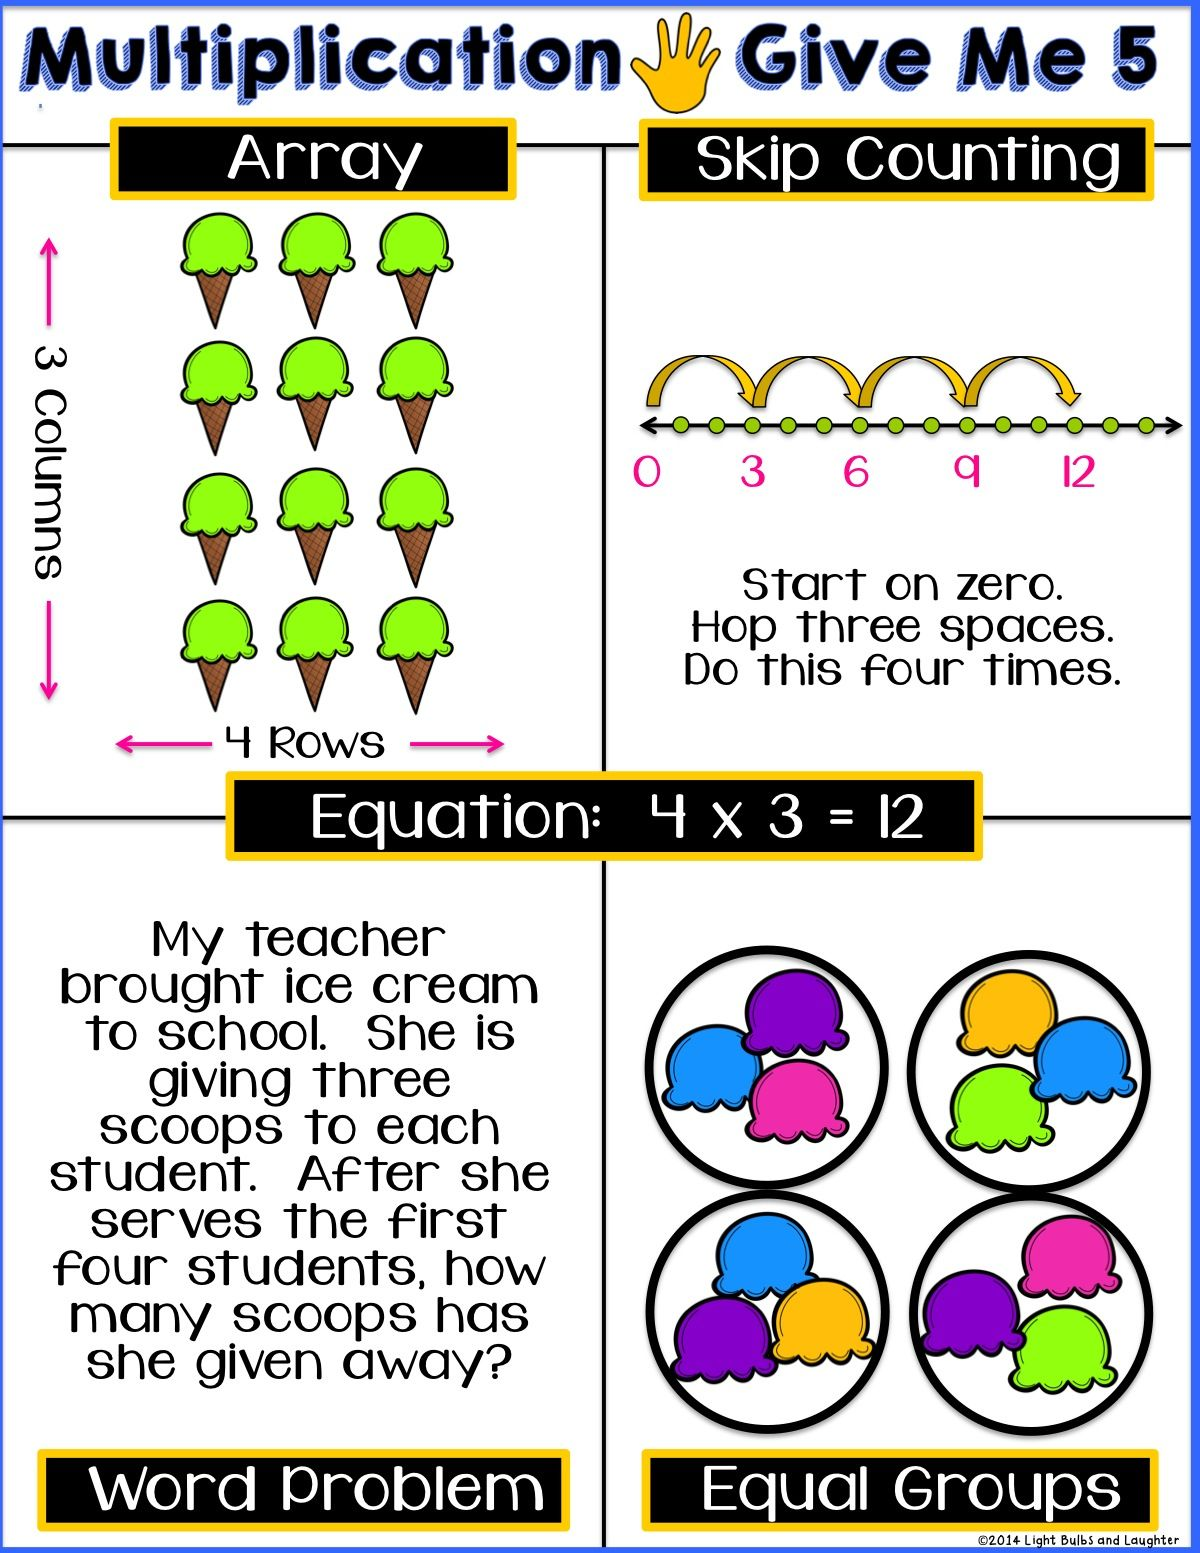 Free Multiplication Give Me 5 Poster